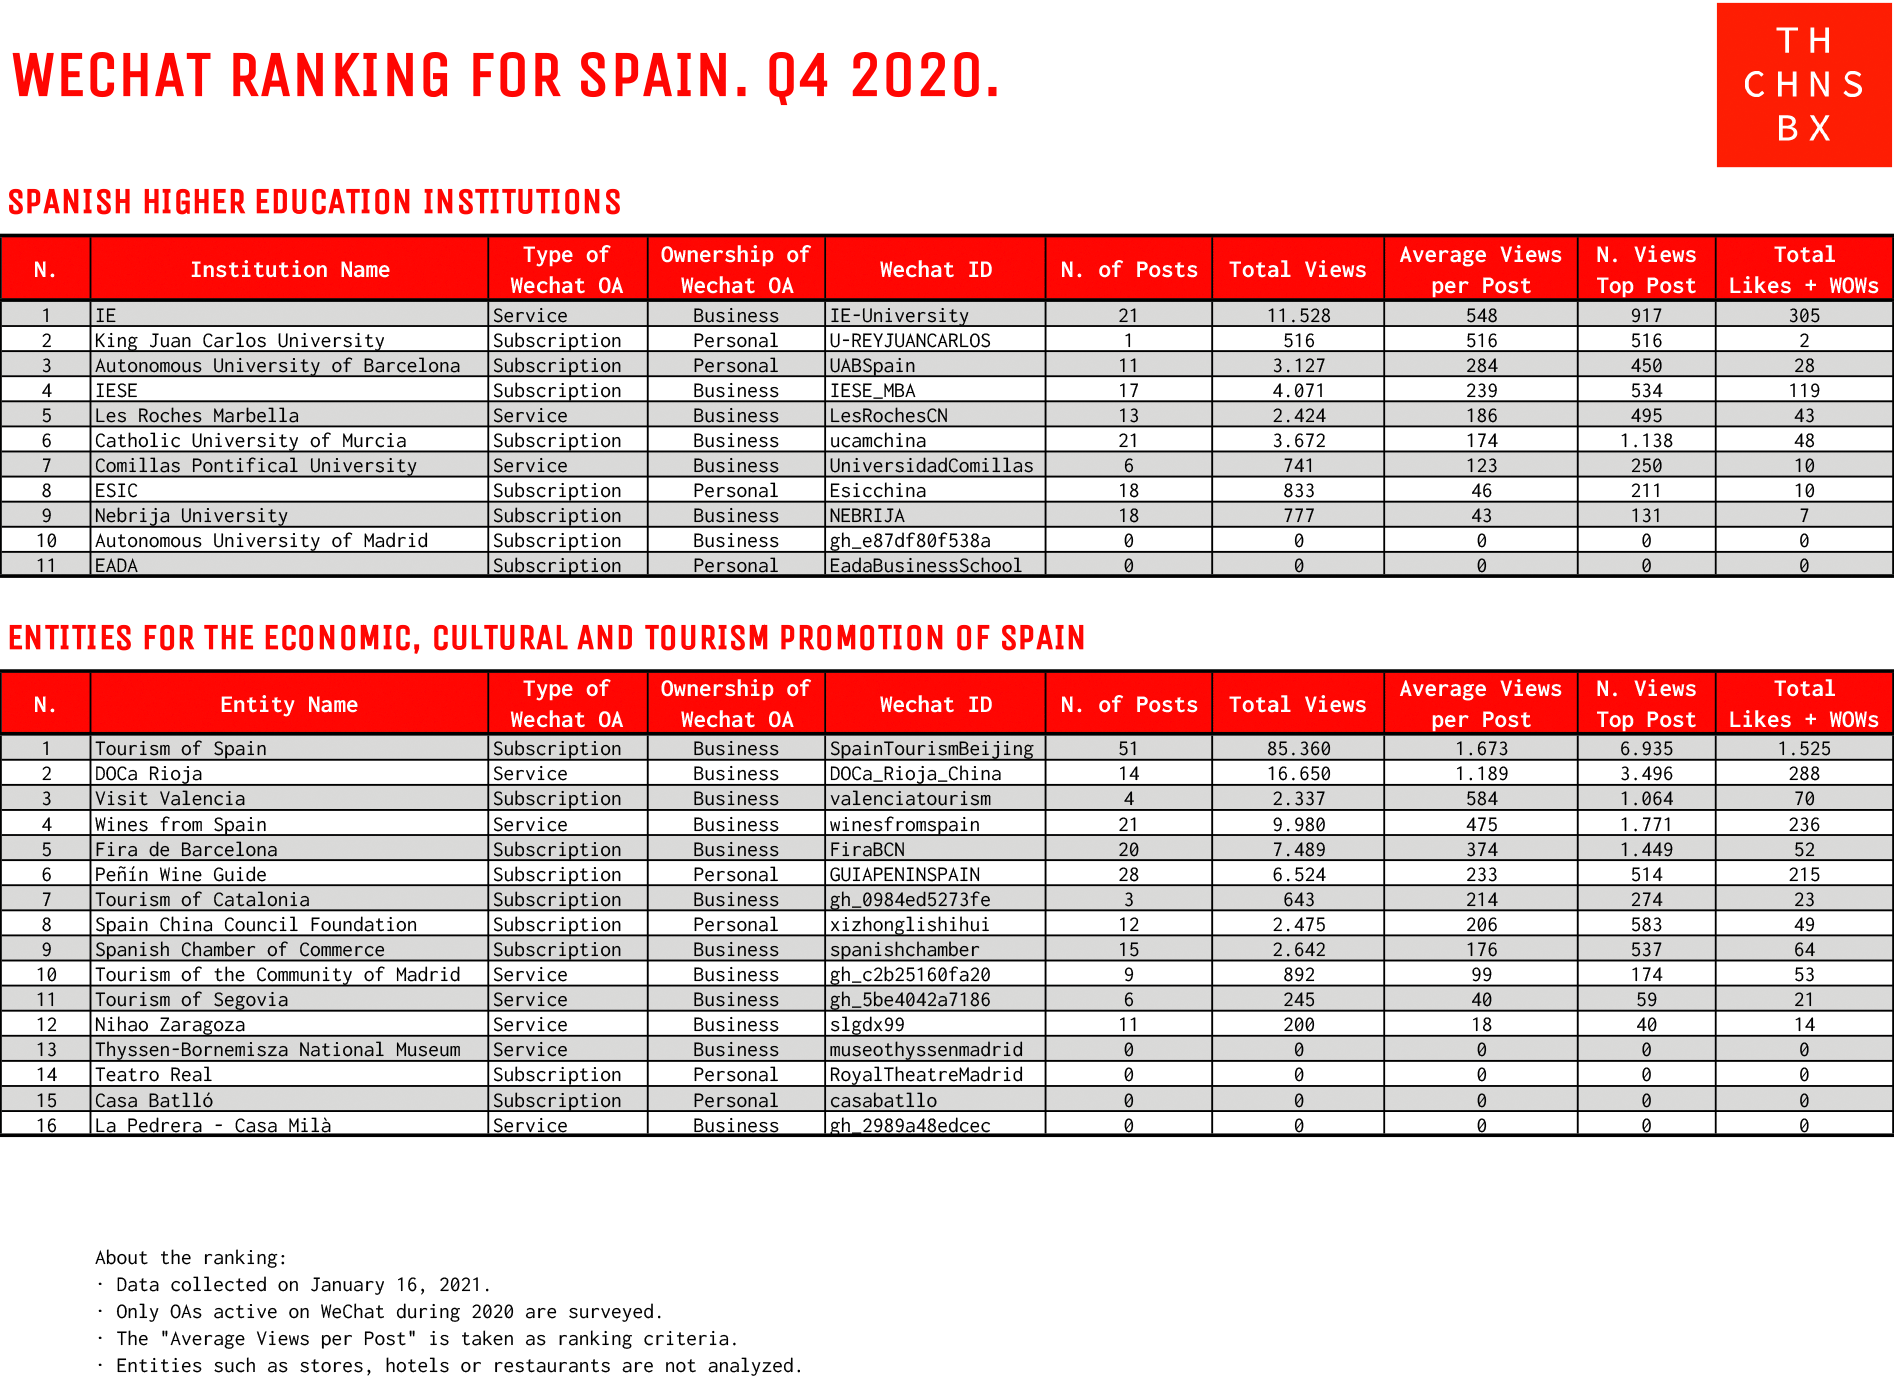 WeChat ranking for Spain Q4 2020